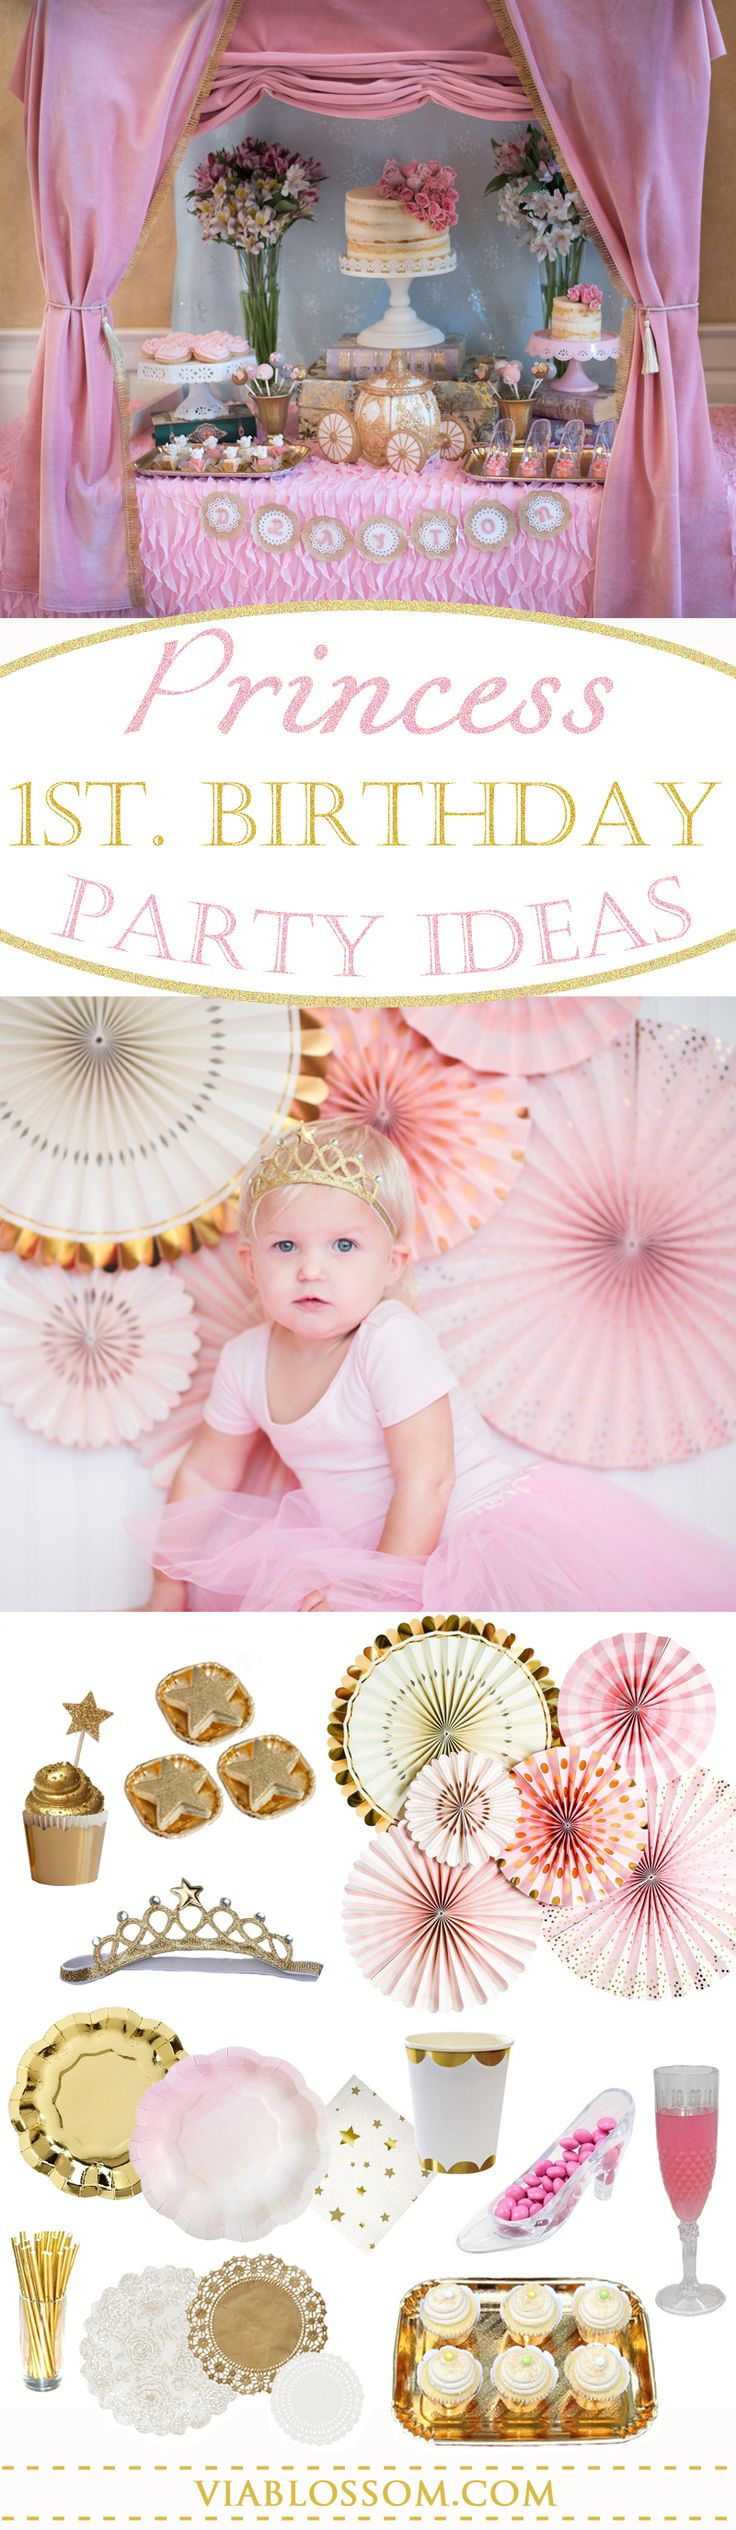 1st Birthday Party ideas for a Princess Birthday Party.  All the Gold and Pink Party ideas you will need for your girl Birthday party. #1stbirthdaygirlparty #princessbirthdayparty #princesspartyideas #pinkandgoldparty